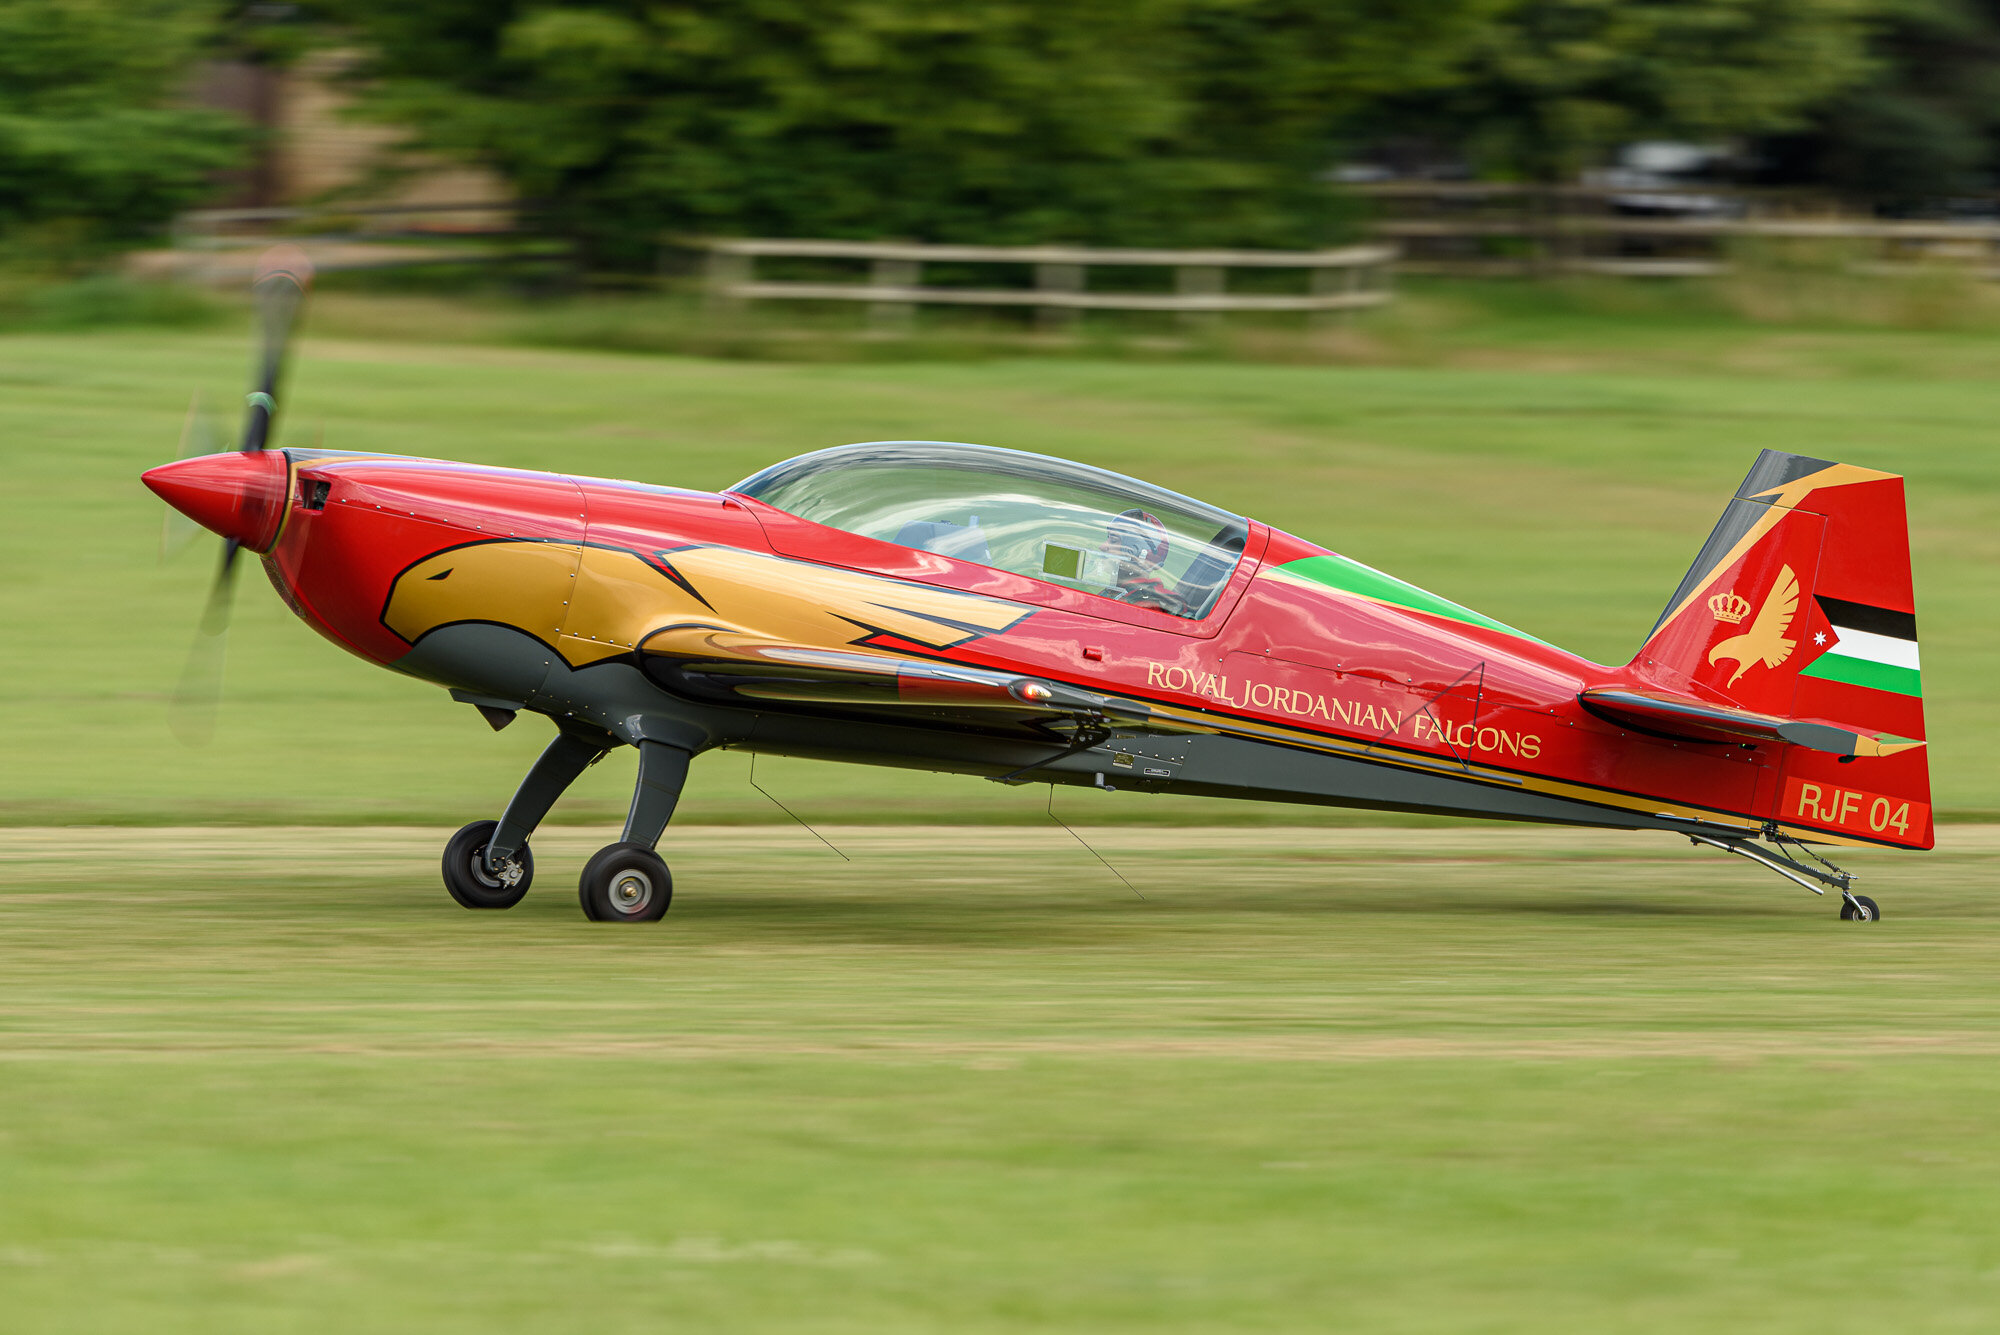 An Extra-330 LX of the Royal Jordanian Falcons lands at Old Warden. Nikon D810, 500mm PF, 1/160, f/5.6.